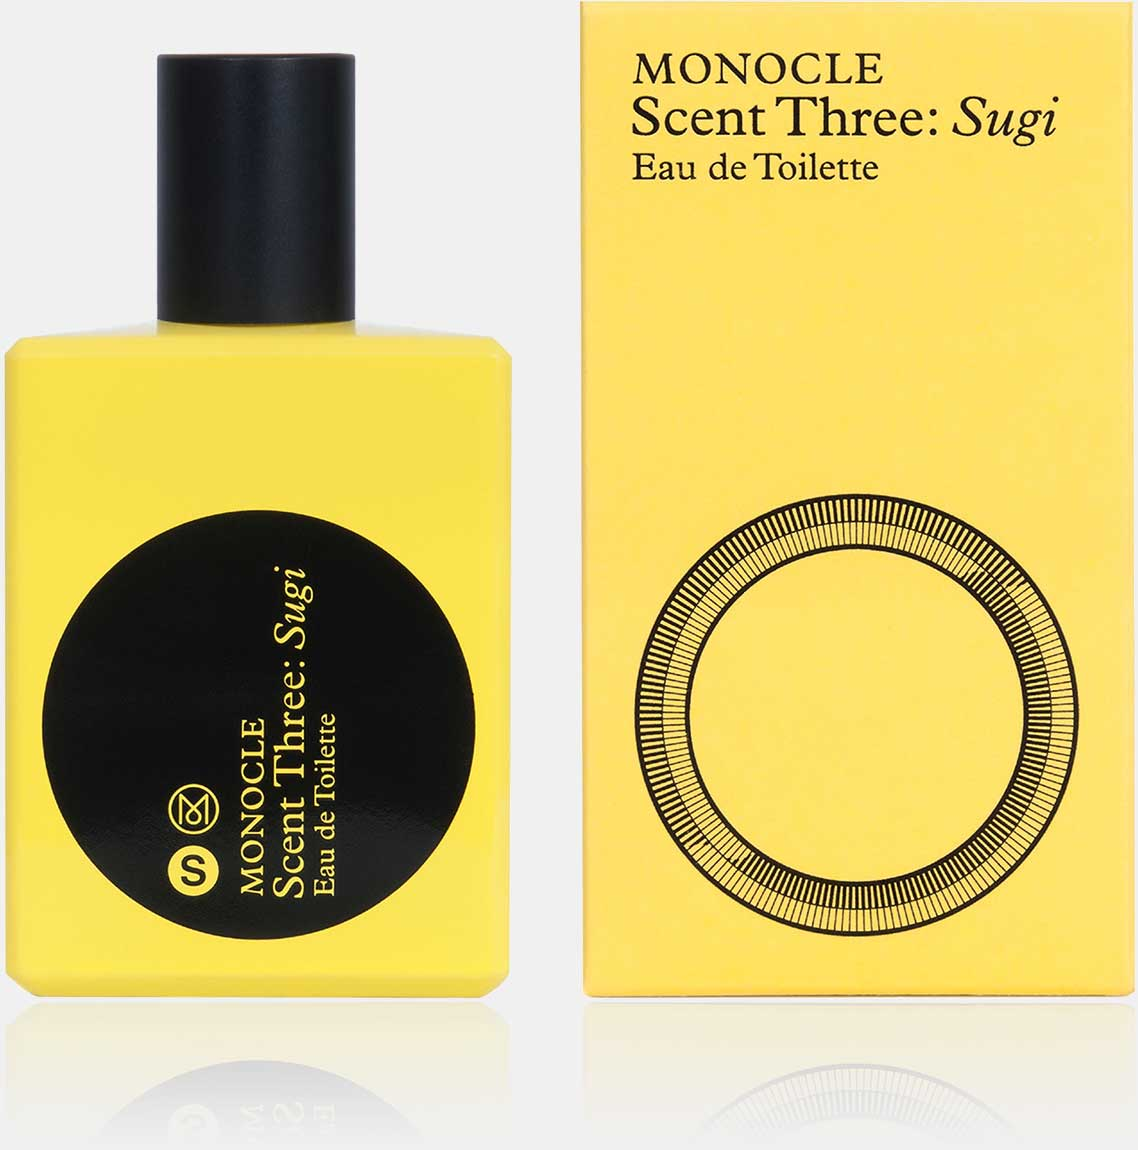 Monocle Scent Three Sugi - Eau de Toilette (50 ml natural spray)